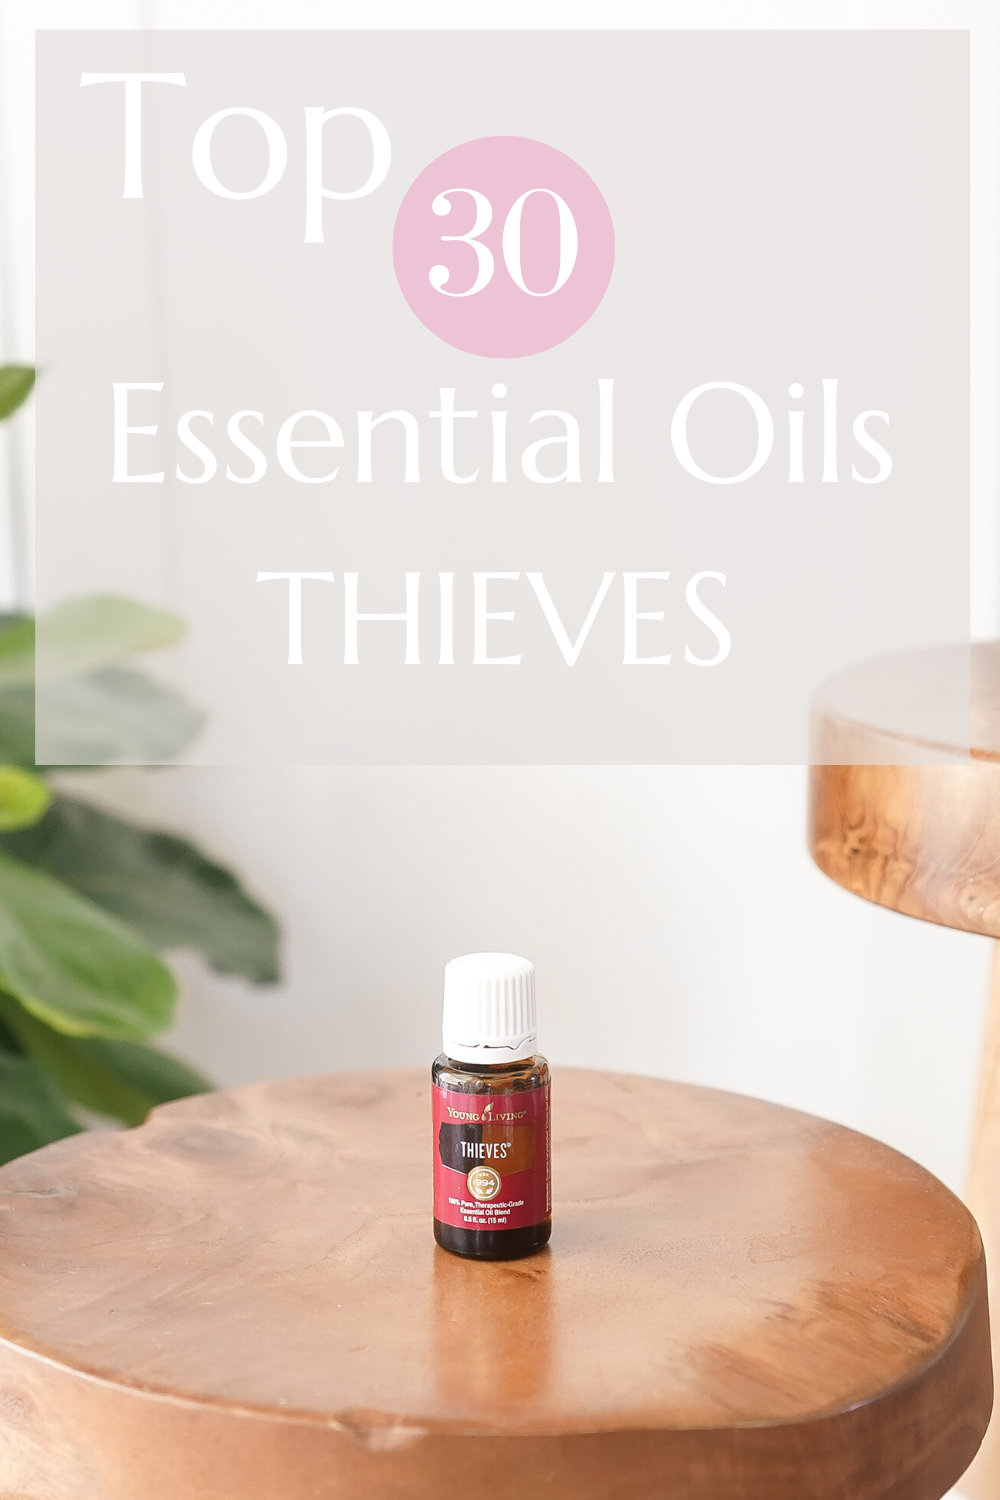 Top 30 Essential Oils Thieves